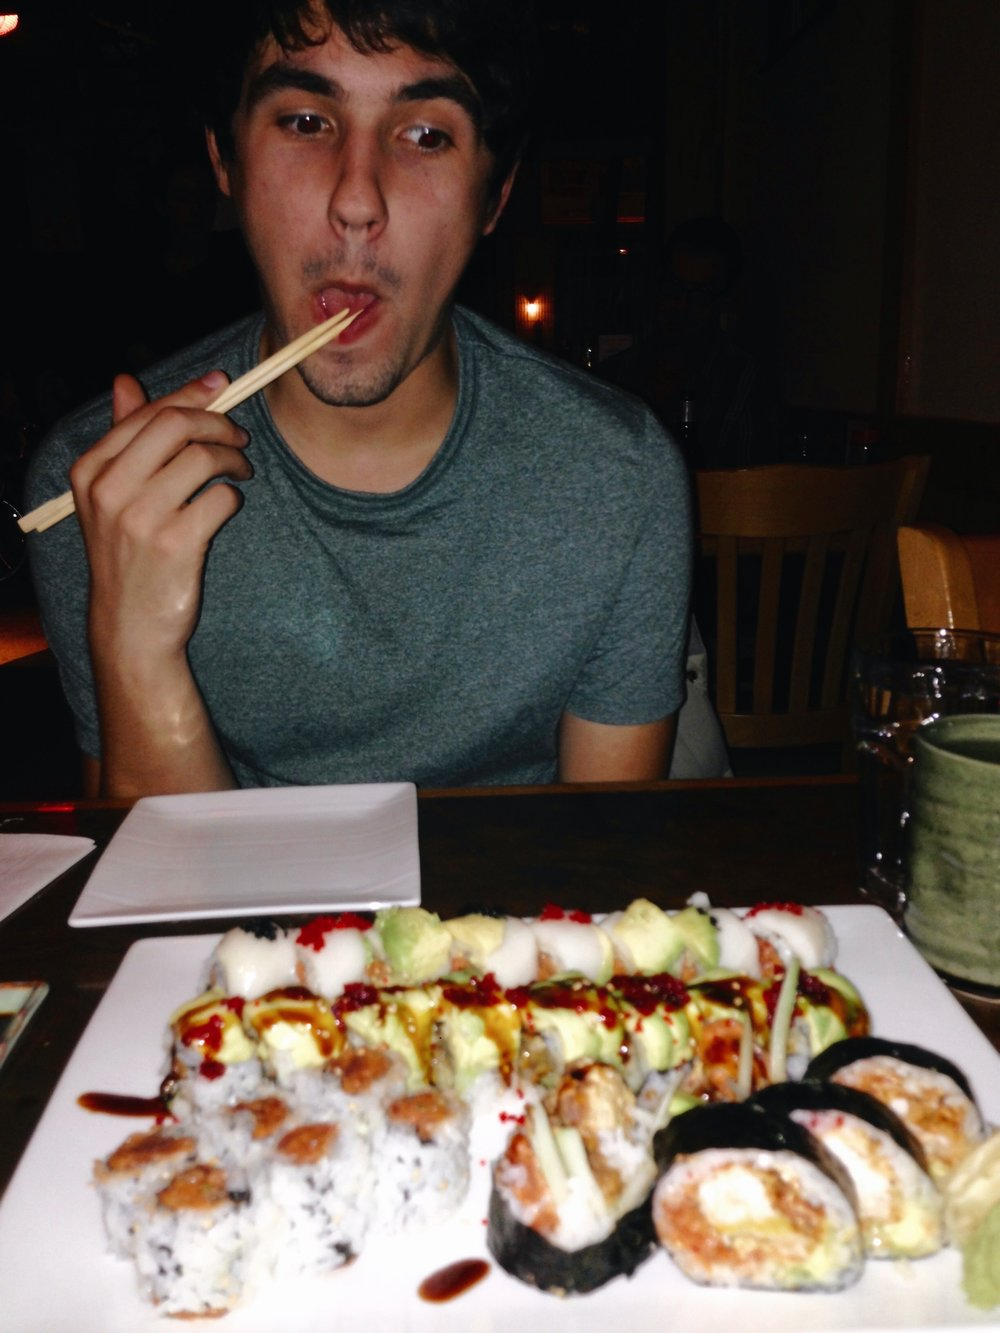 Very serious part of relocation: finding the nearby sushi restaurant and trying out all the rolls. I enlisted the help of my brother. He is a very reliable (read: always in the mood to get sushi).